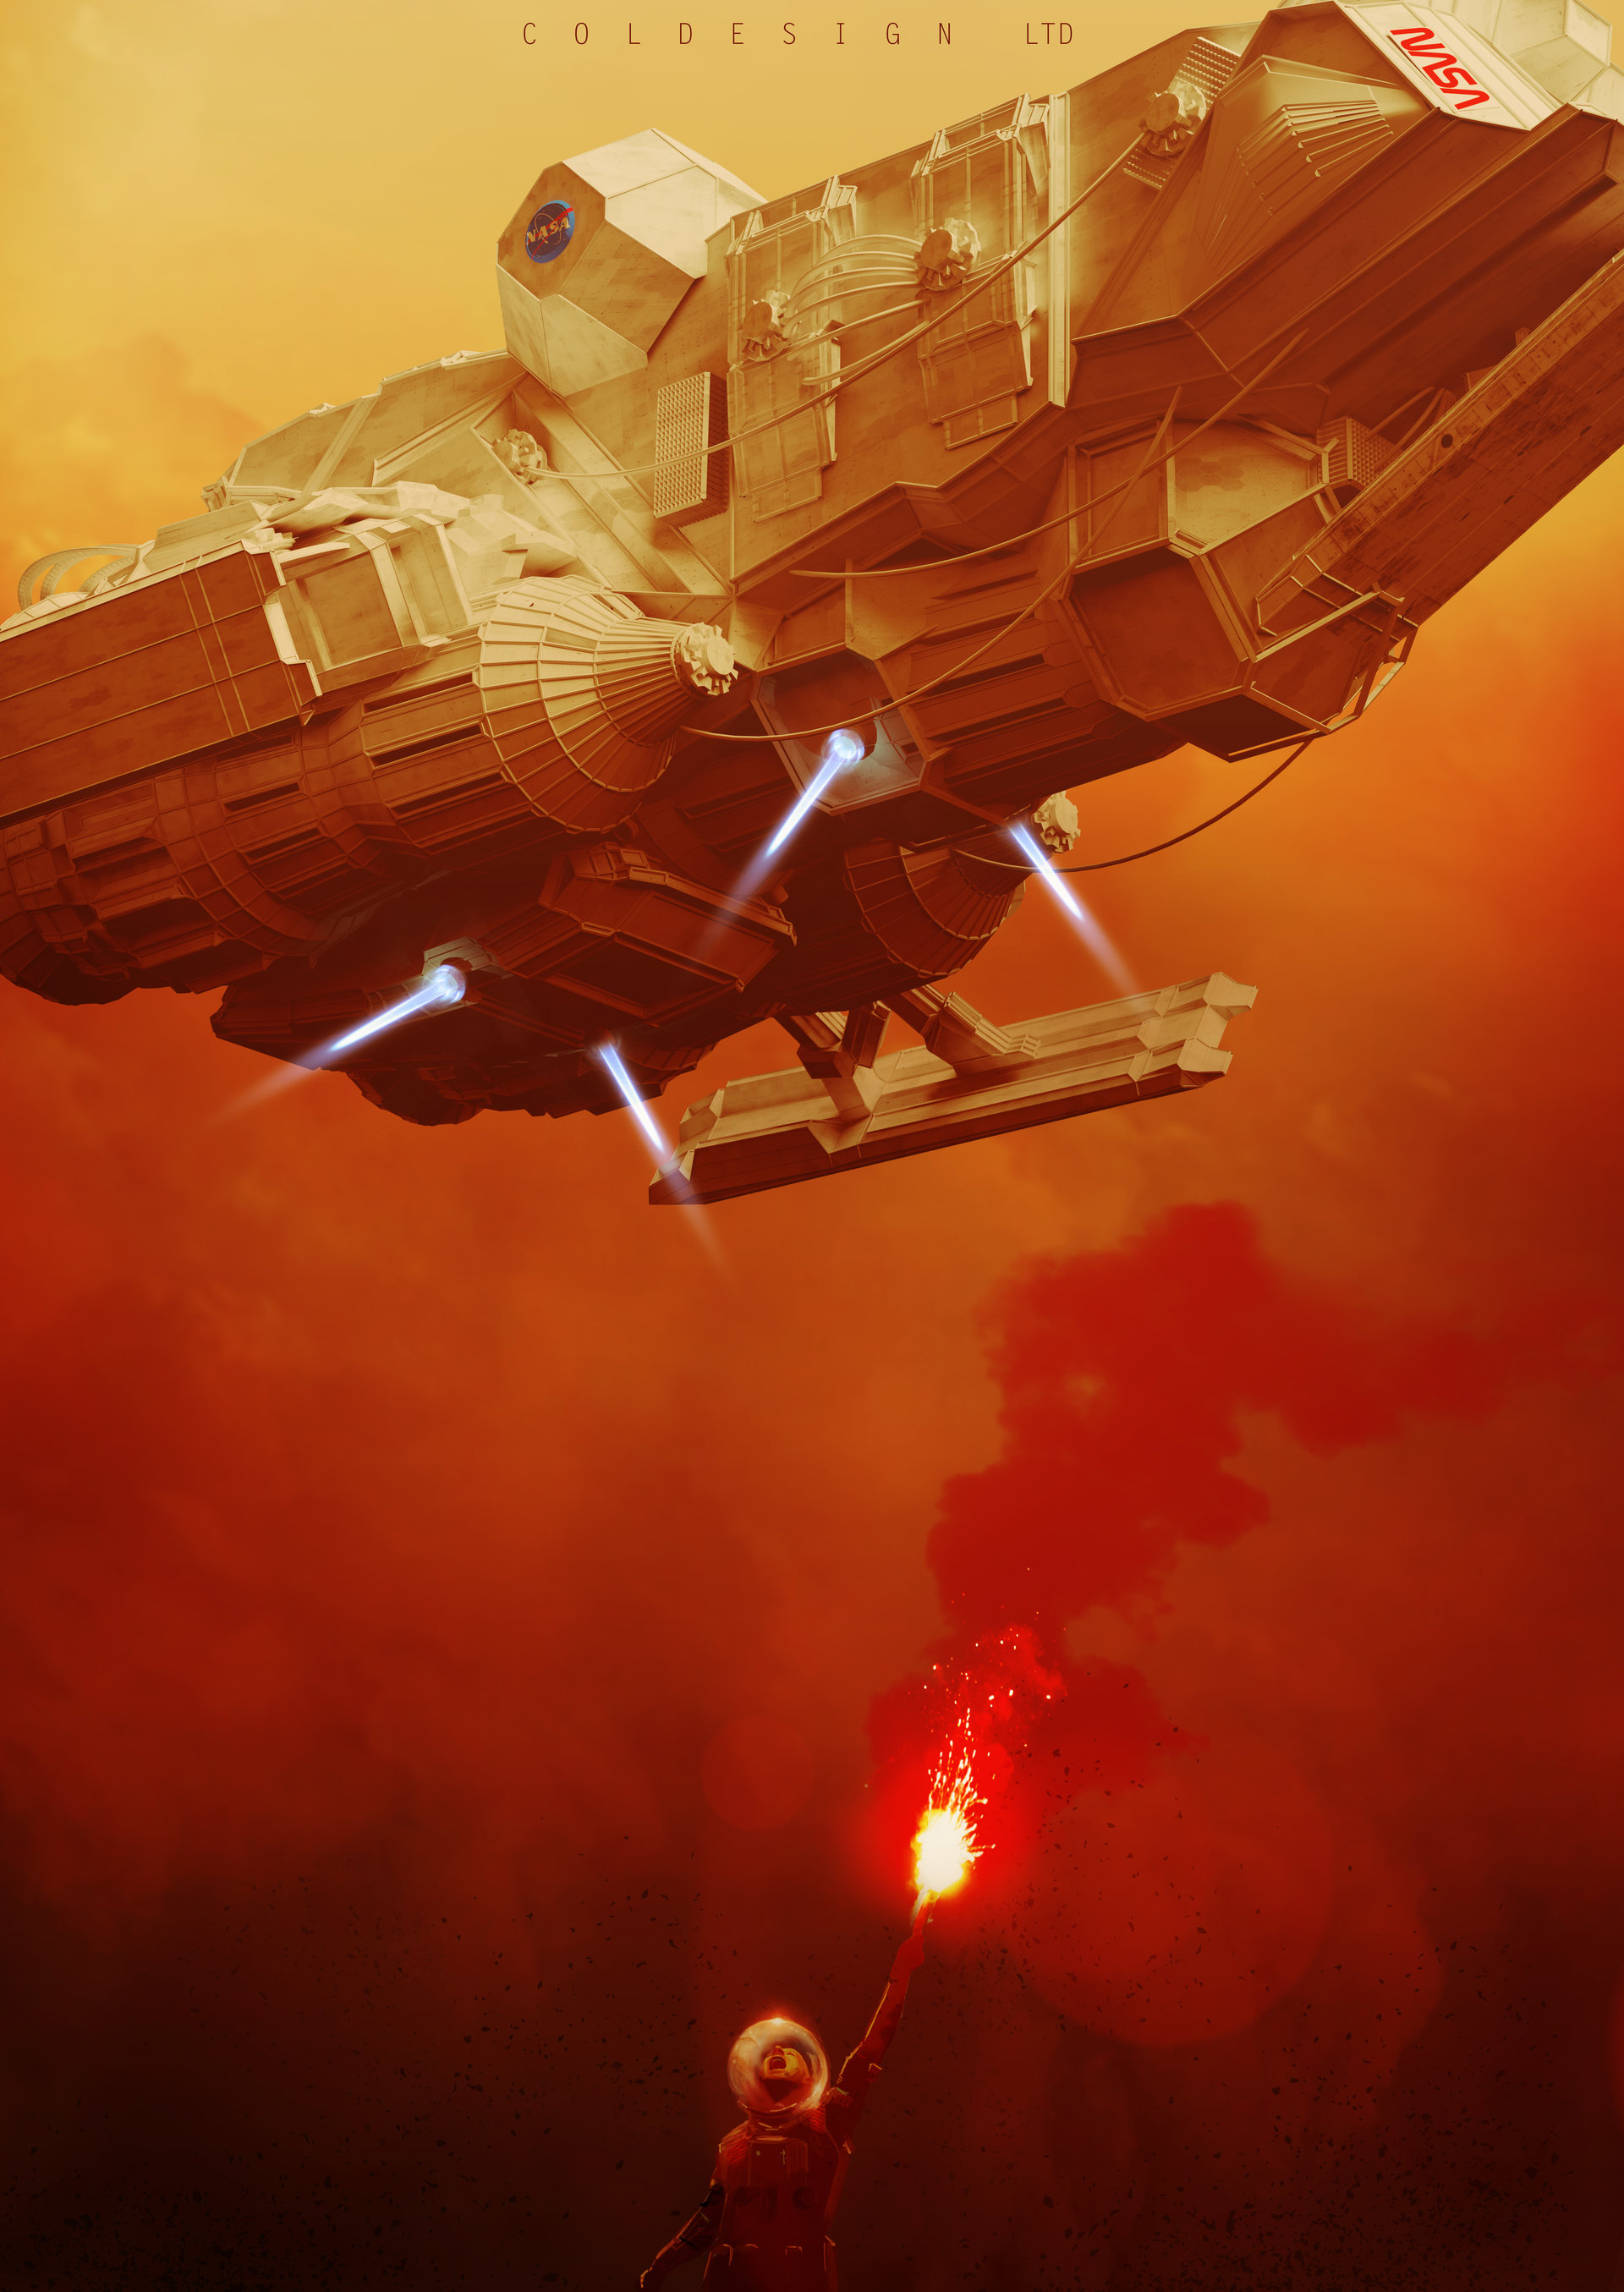 D And D Trailers >> The Science Fiction Art of Col Price | Sci-Fi Concept Artist